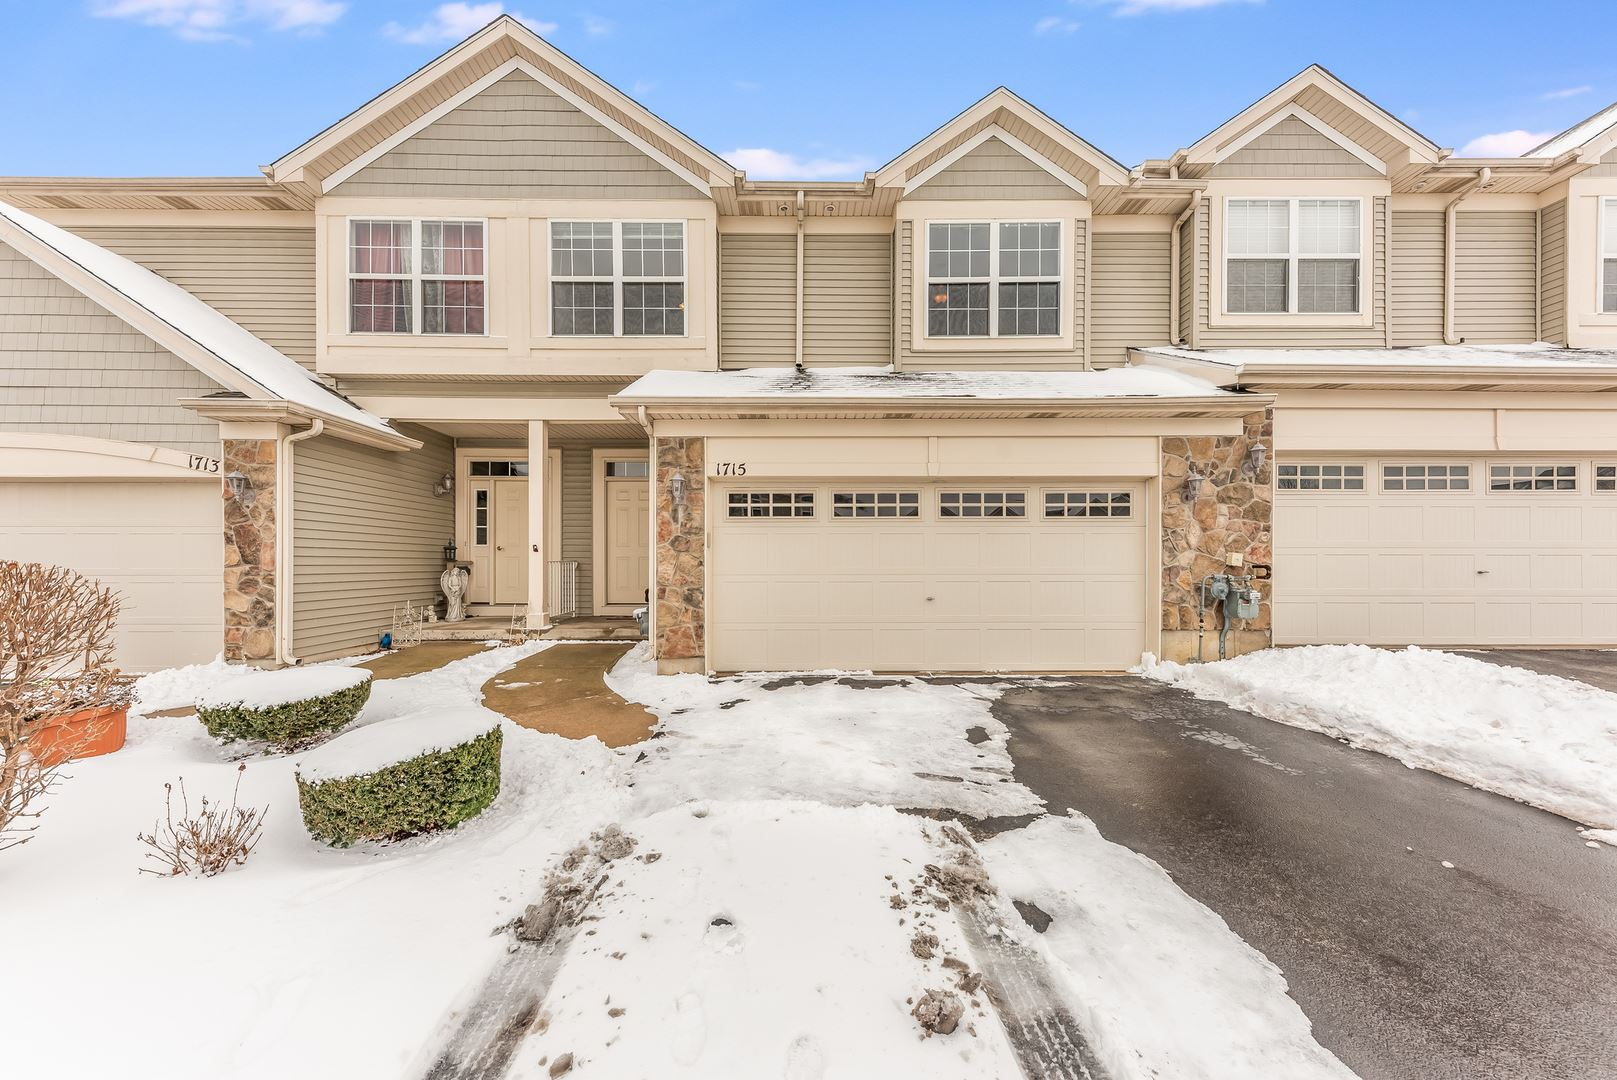 Photo of 1715 FIELDSTONE Court, Shorewood, IL 60404 (MLS # 10987074)